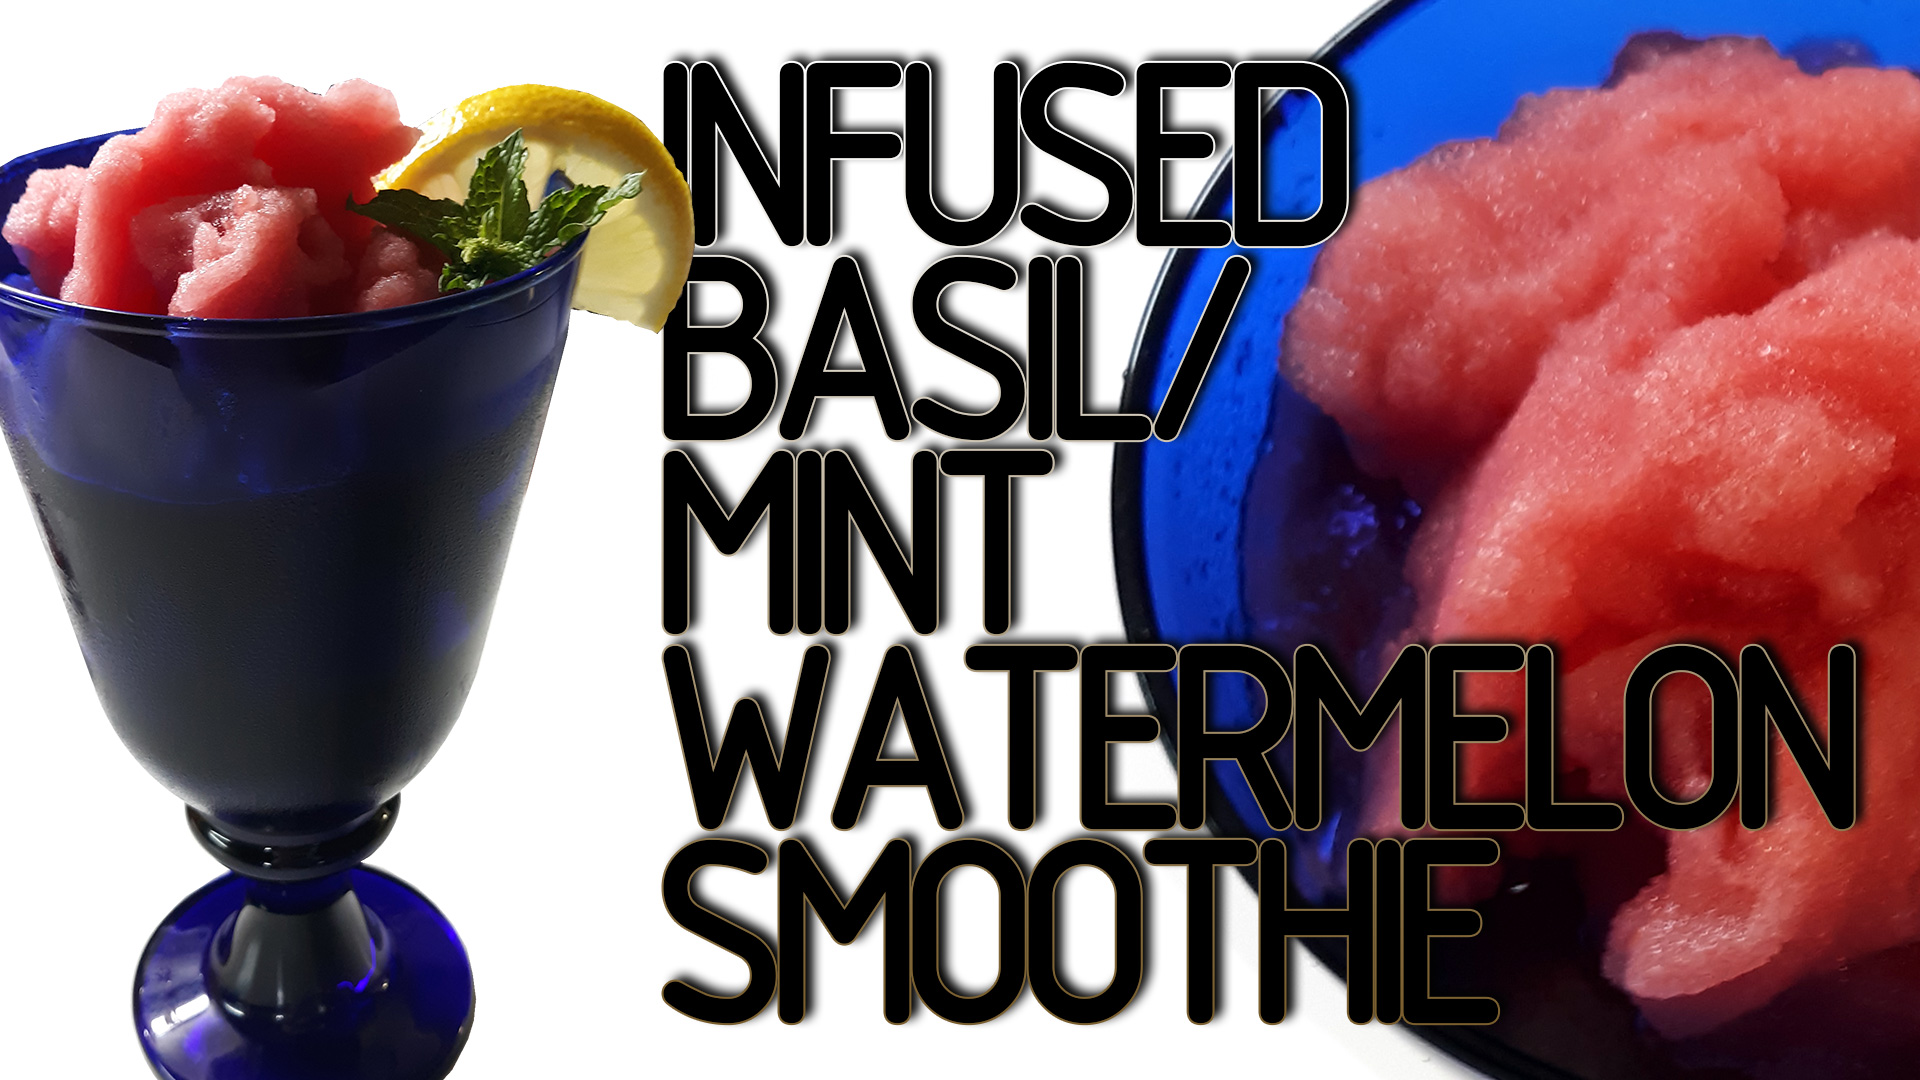 watermelon-basil-mint-smoothies-recipe-infused-eats-63-thumbnail